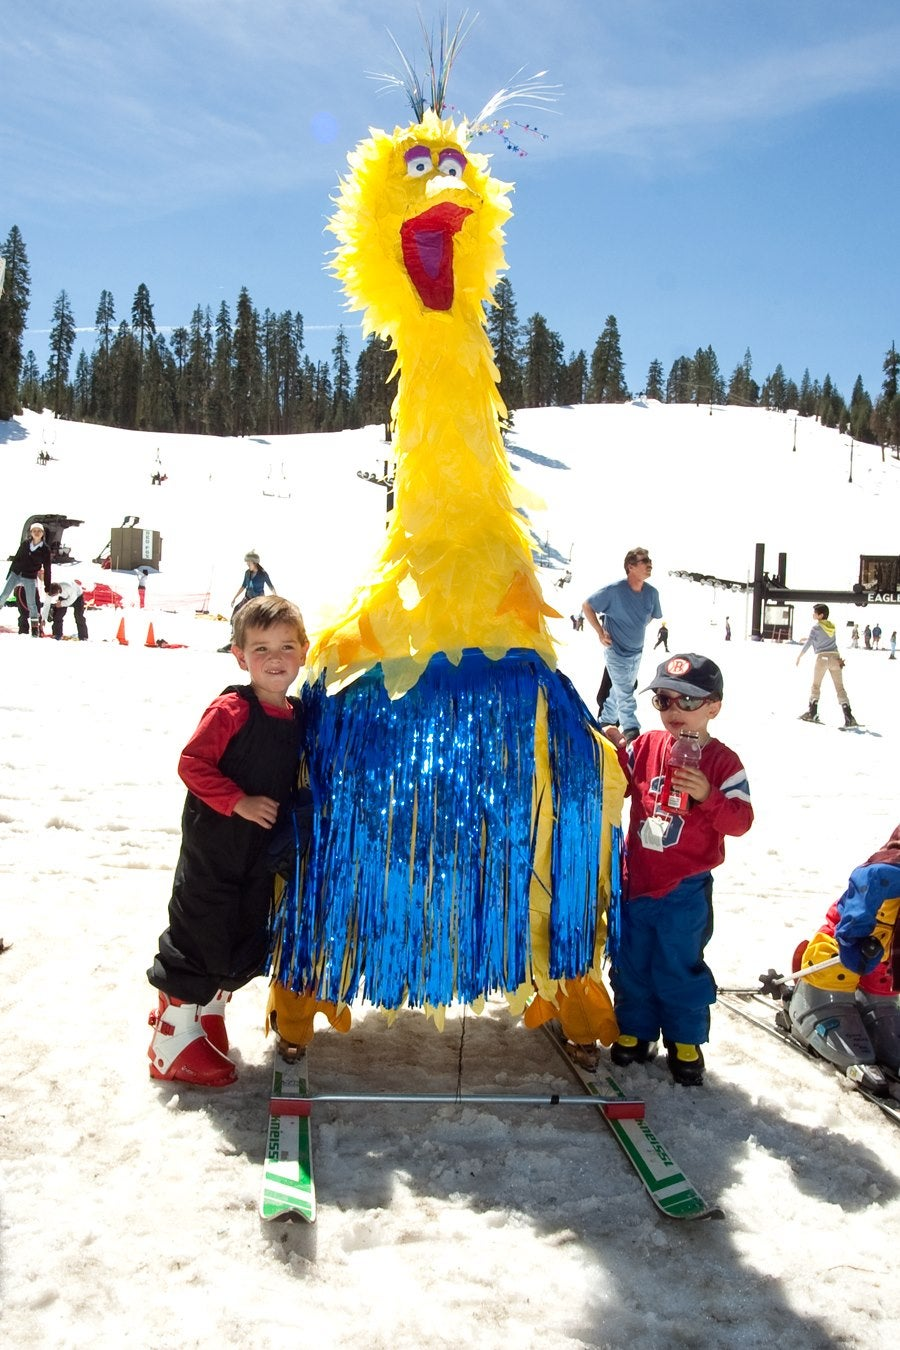 two young boys pose with big bird puppet during Springfest at Badger Pass